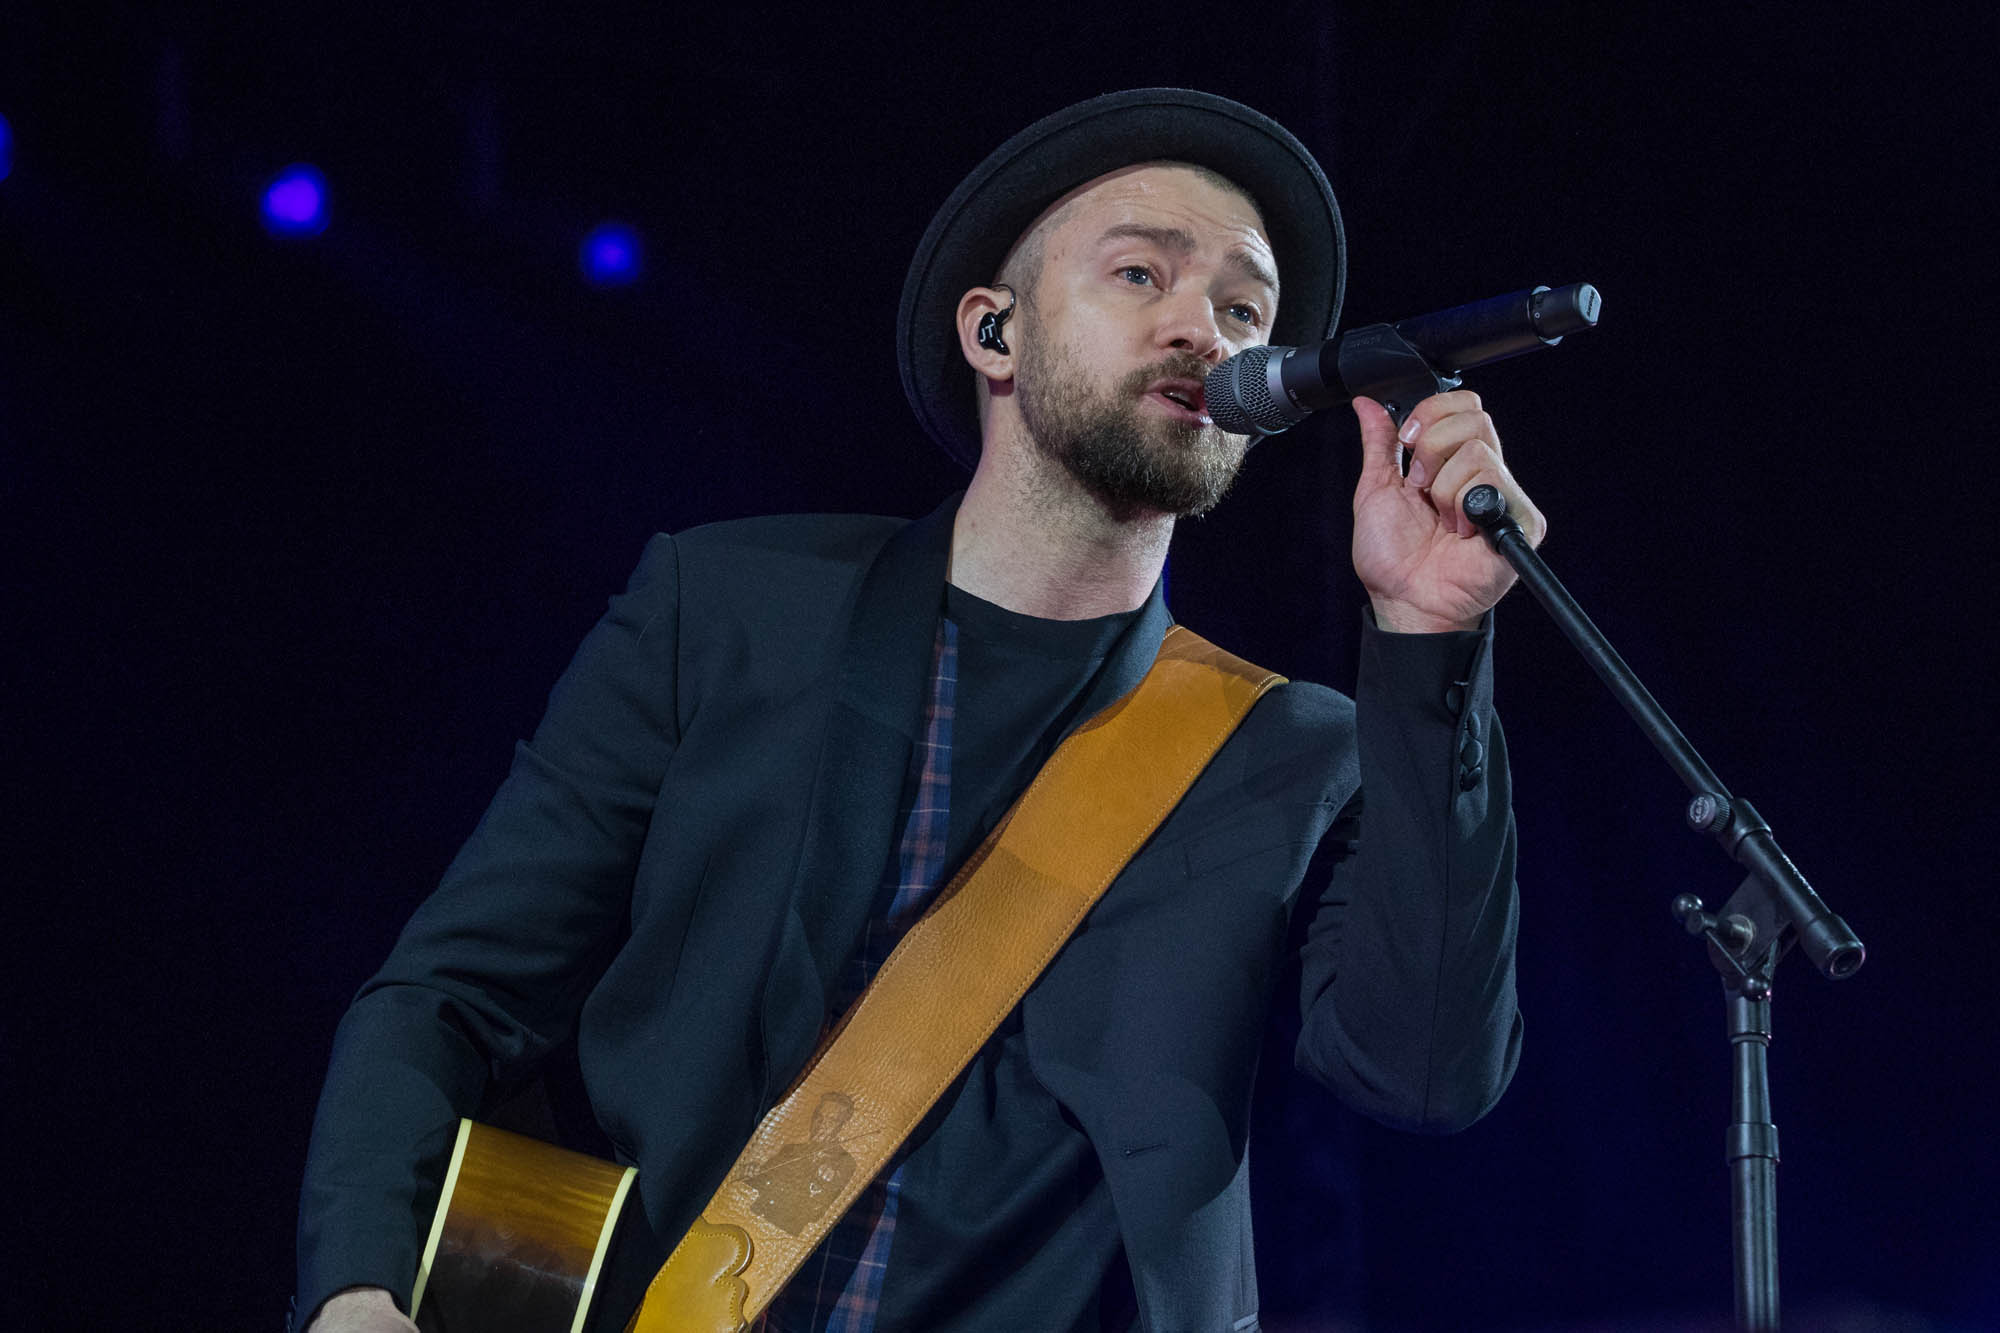 Justin Timberlake sings into a microphone